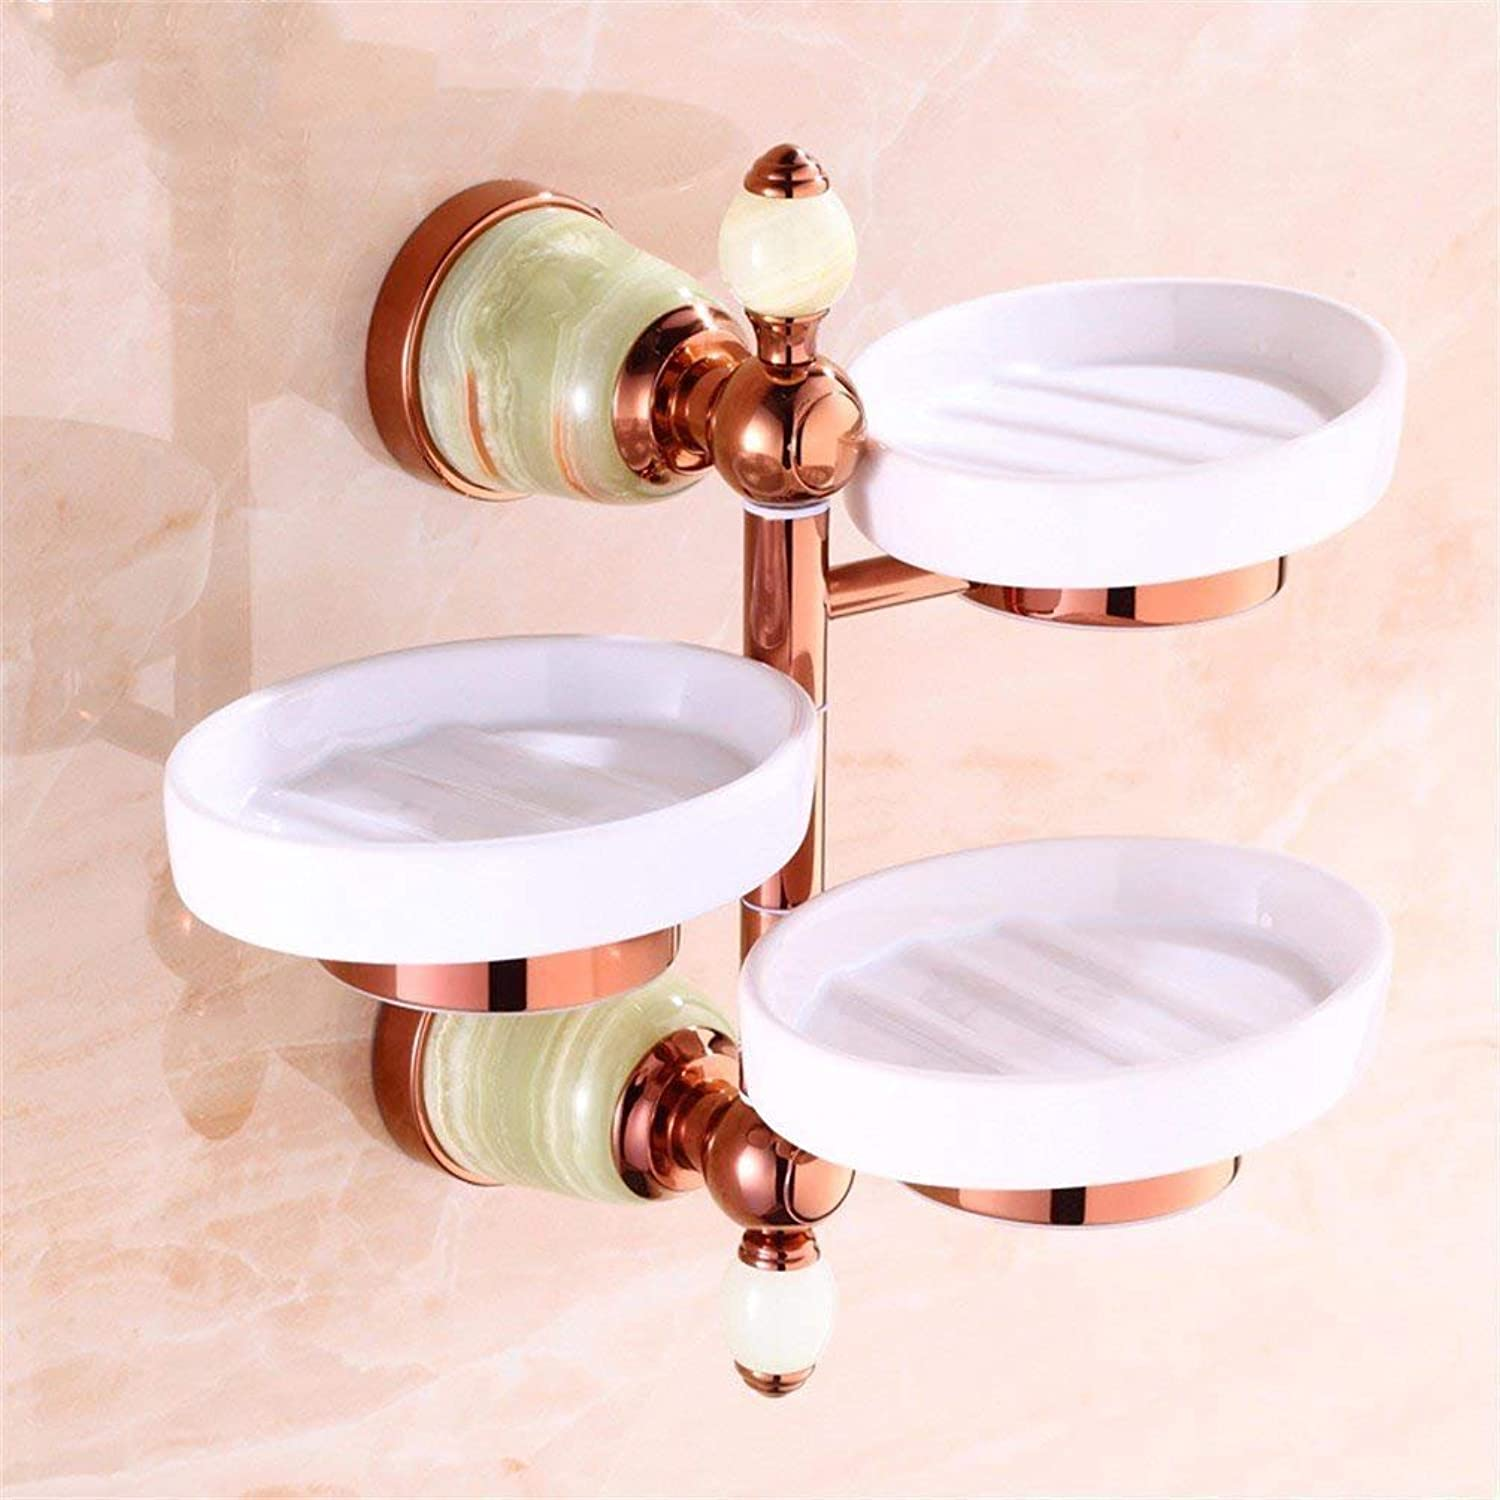 Jade Green Pink gold Small Hair-Bath Towels Accessory Kit Suspension Hook of Copper in The Dishesa,Three